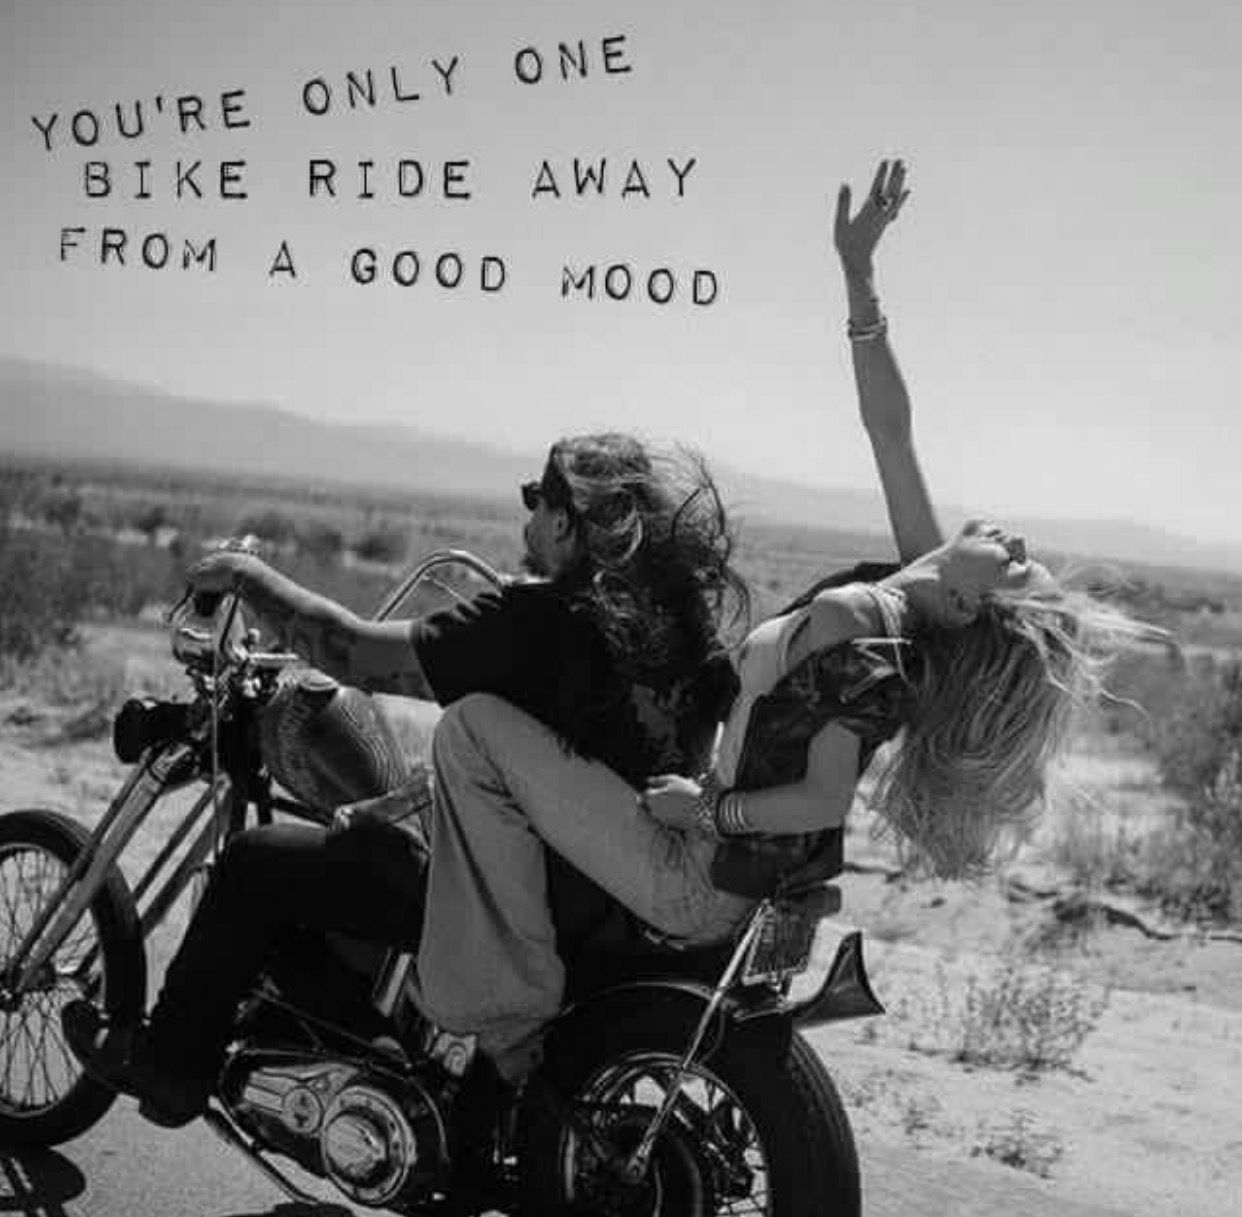 One Ride From A Good Mood Biker Quotes Biker Love Riding Quotes